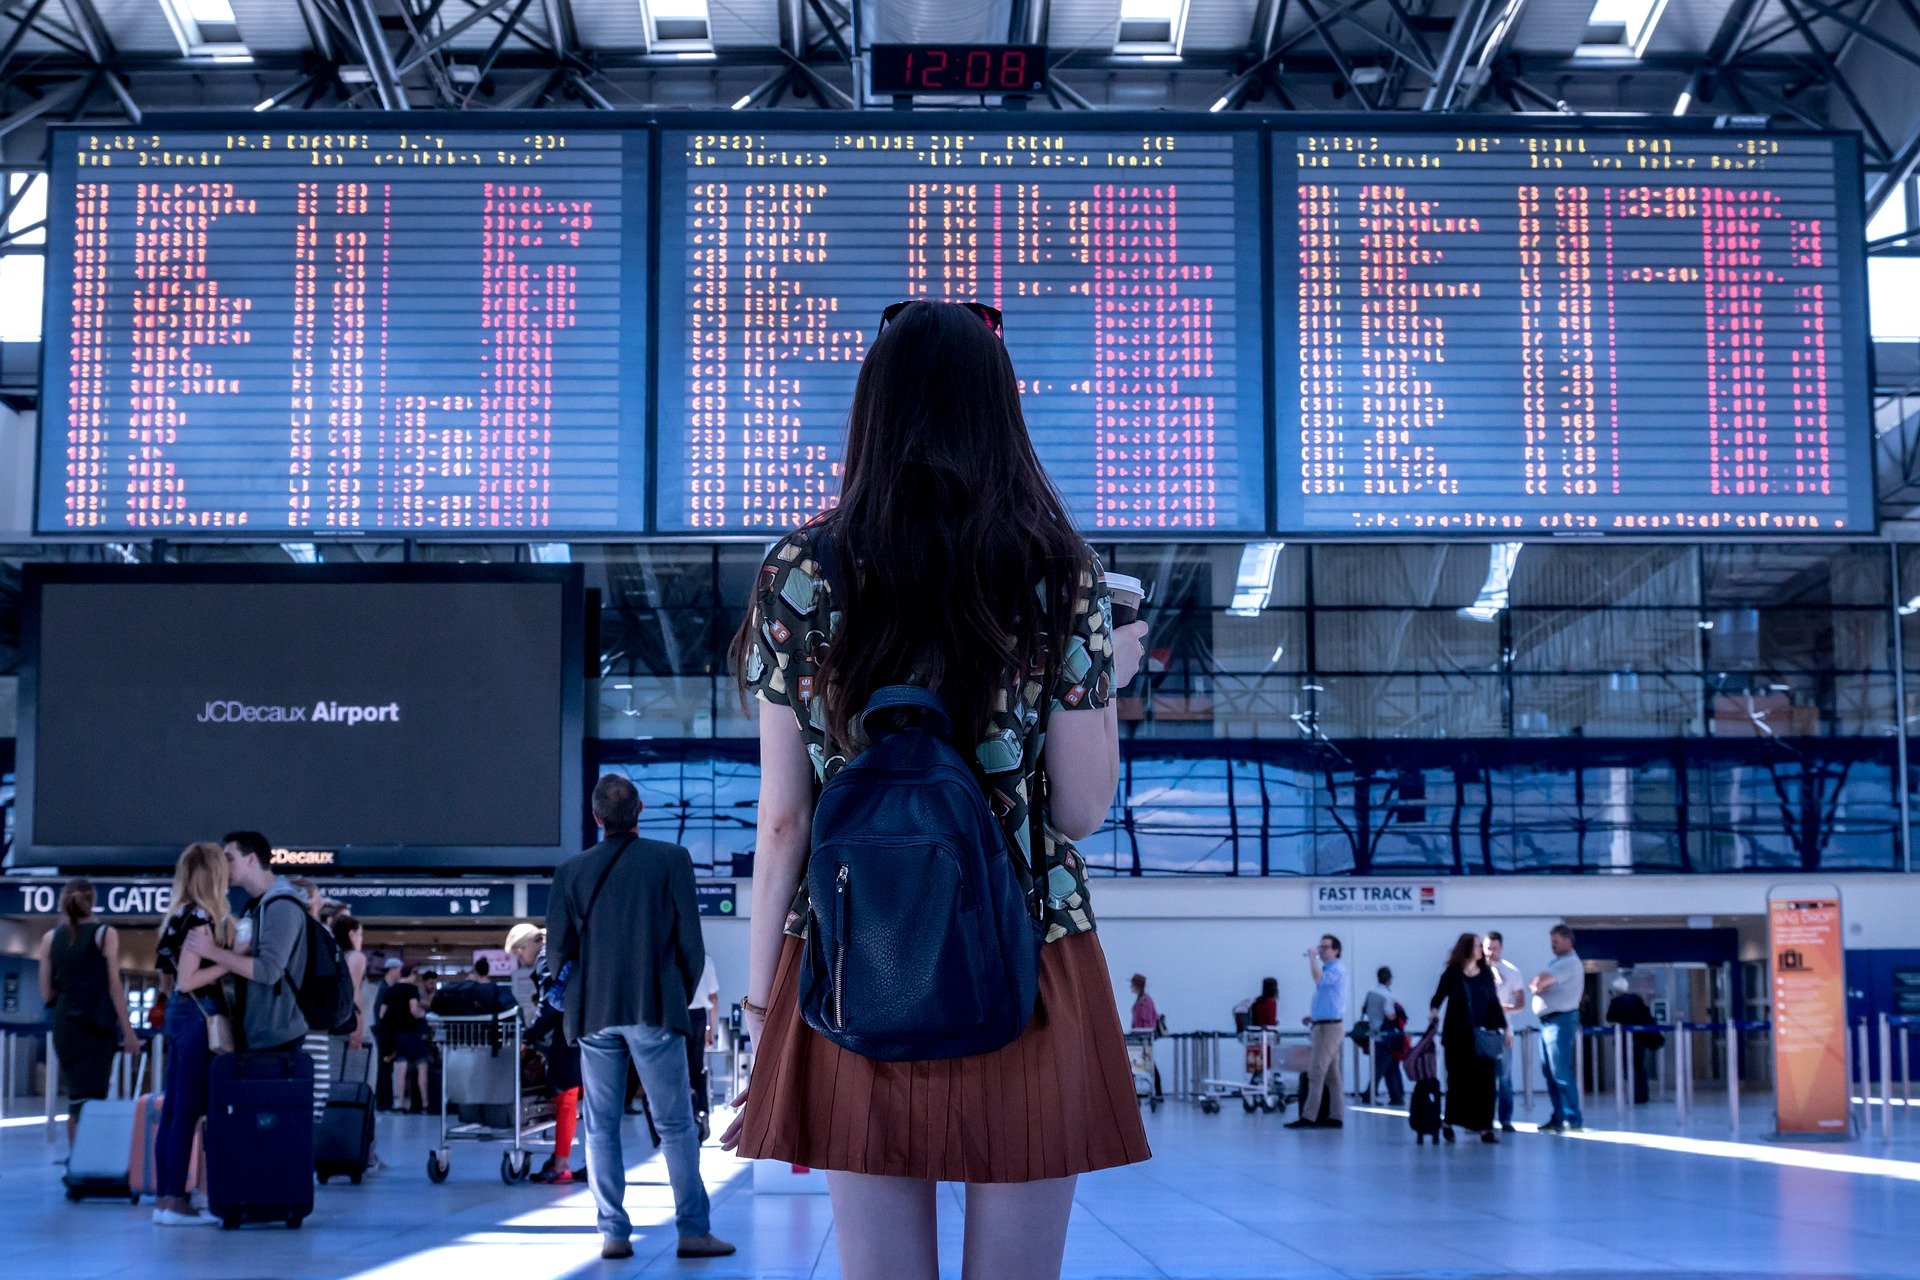 Let's Understand Travel Meaning Better